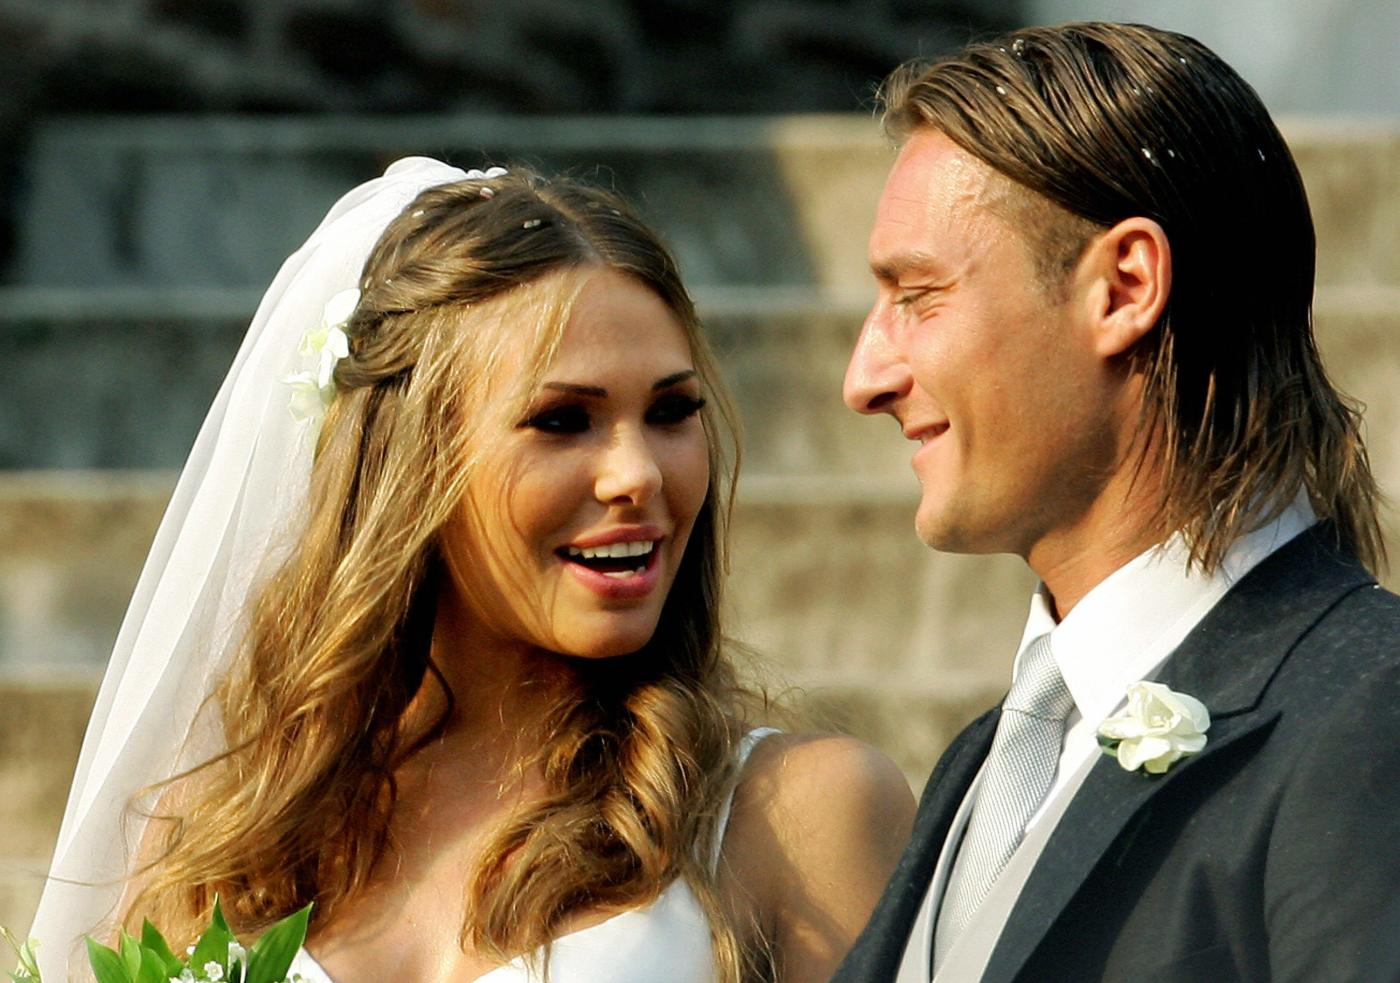 Rome, ITALY: AS Roma captain Francesco Totti (R) smiles to his wife Italian TV star Hilary Blasi leave the church after their wedding 19 June 2005 in Rome. AFP PHOTO/VINCENZO PINTO (Photo credit should read VINCENZO PINTO/AFP/Getty Images)